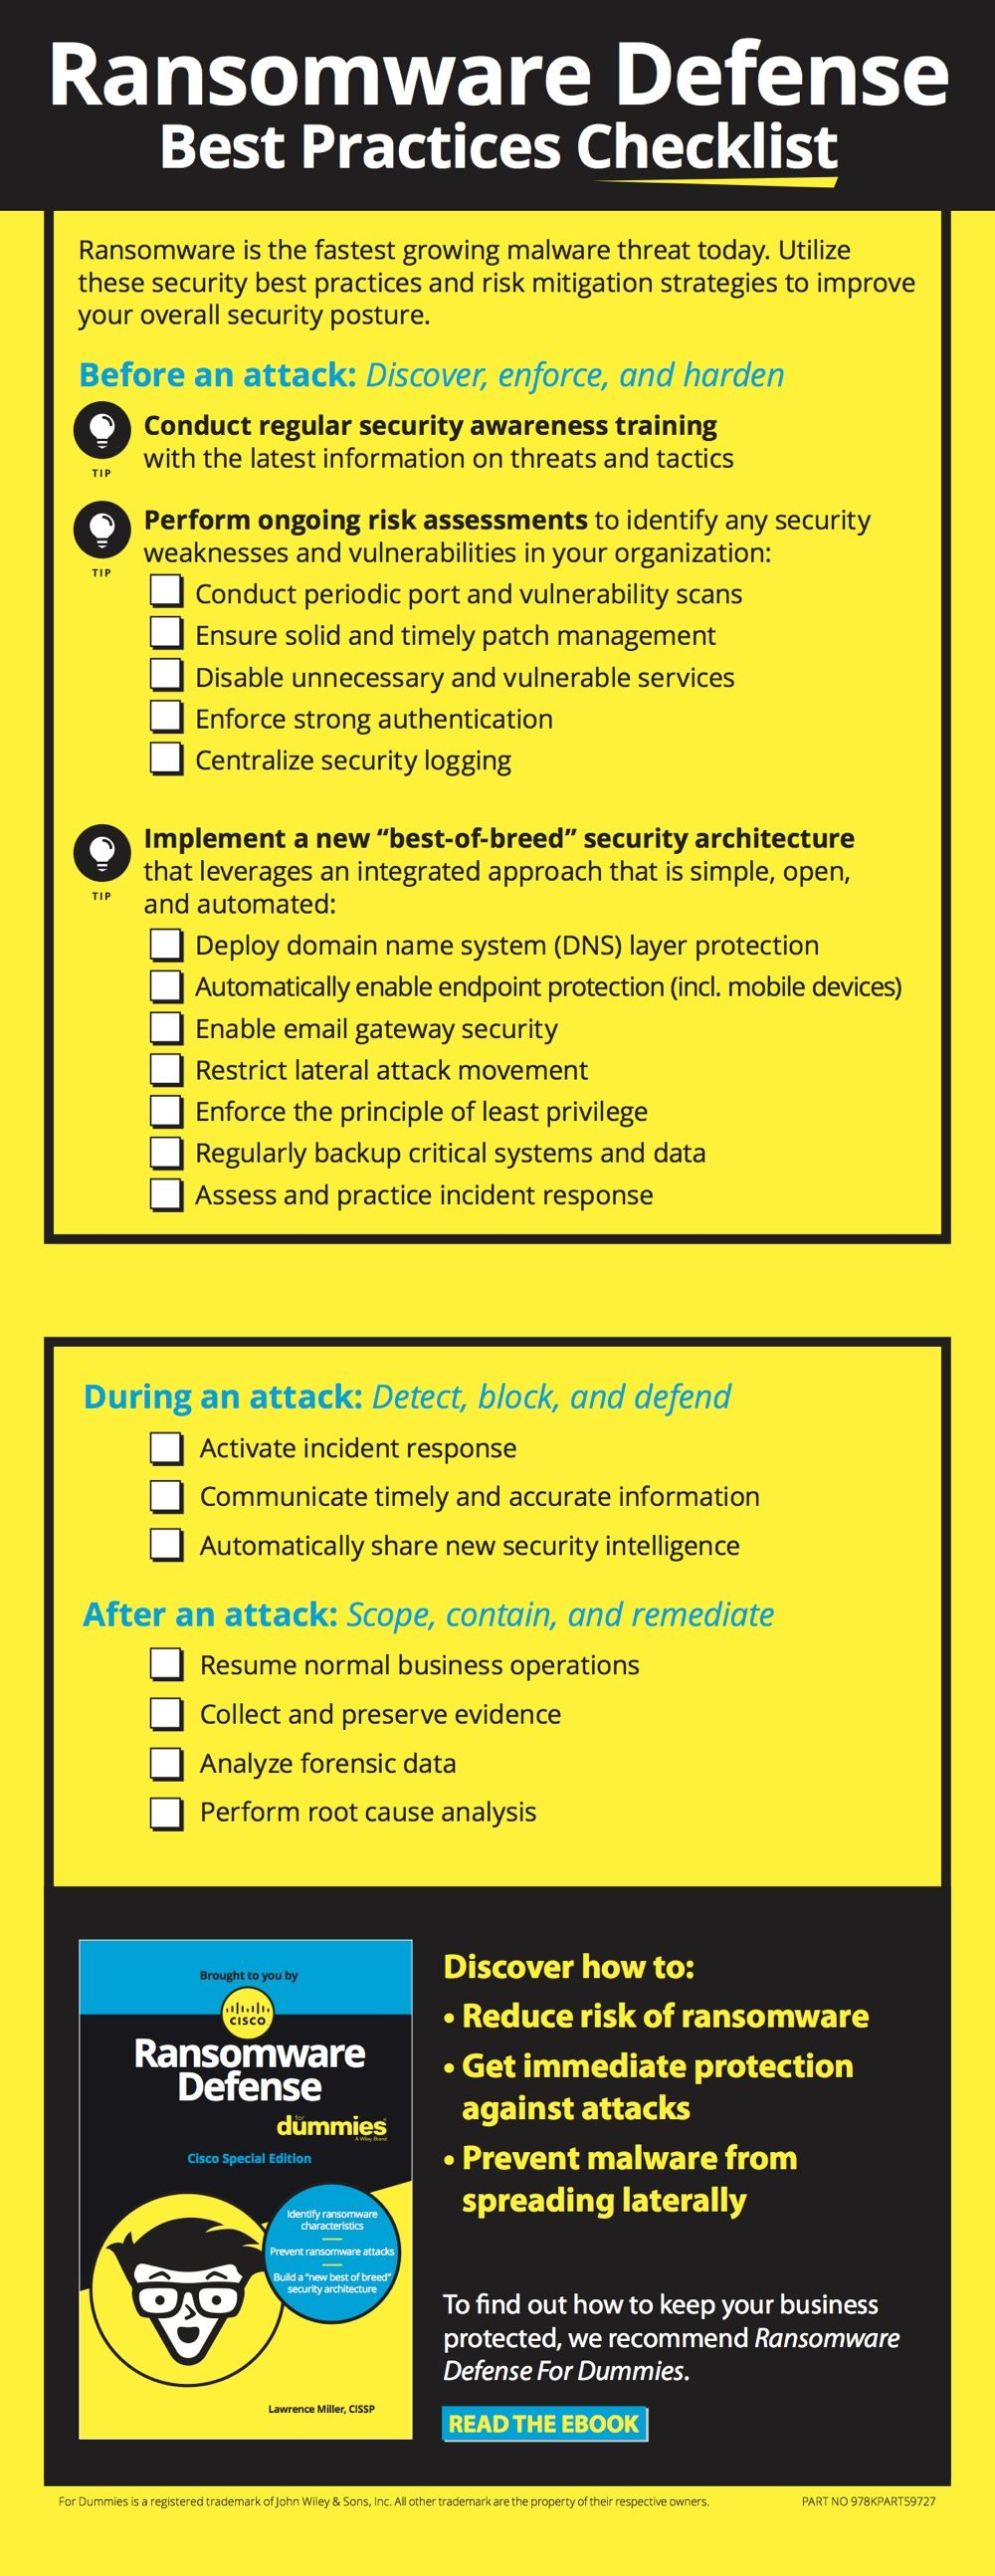 Ransomware Defense Checklist | For Dummies Guides | Infographic